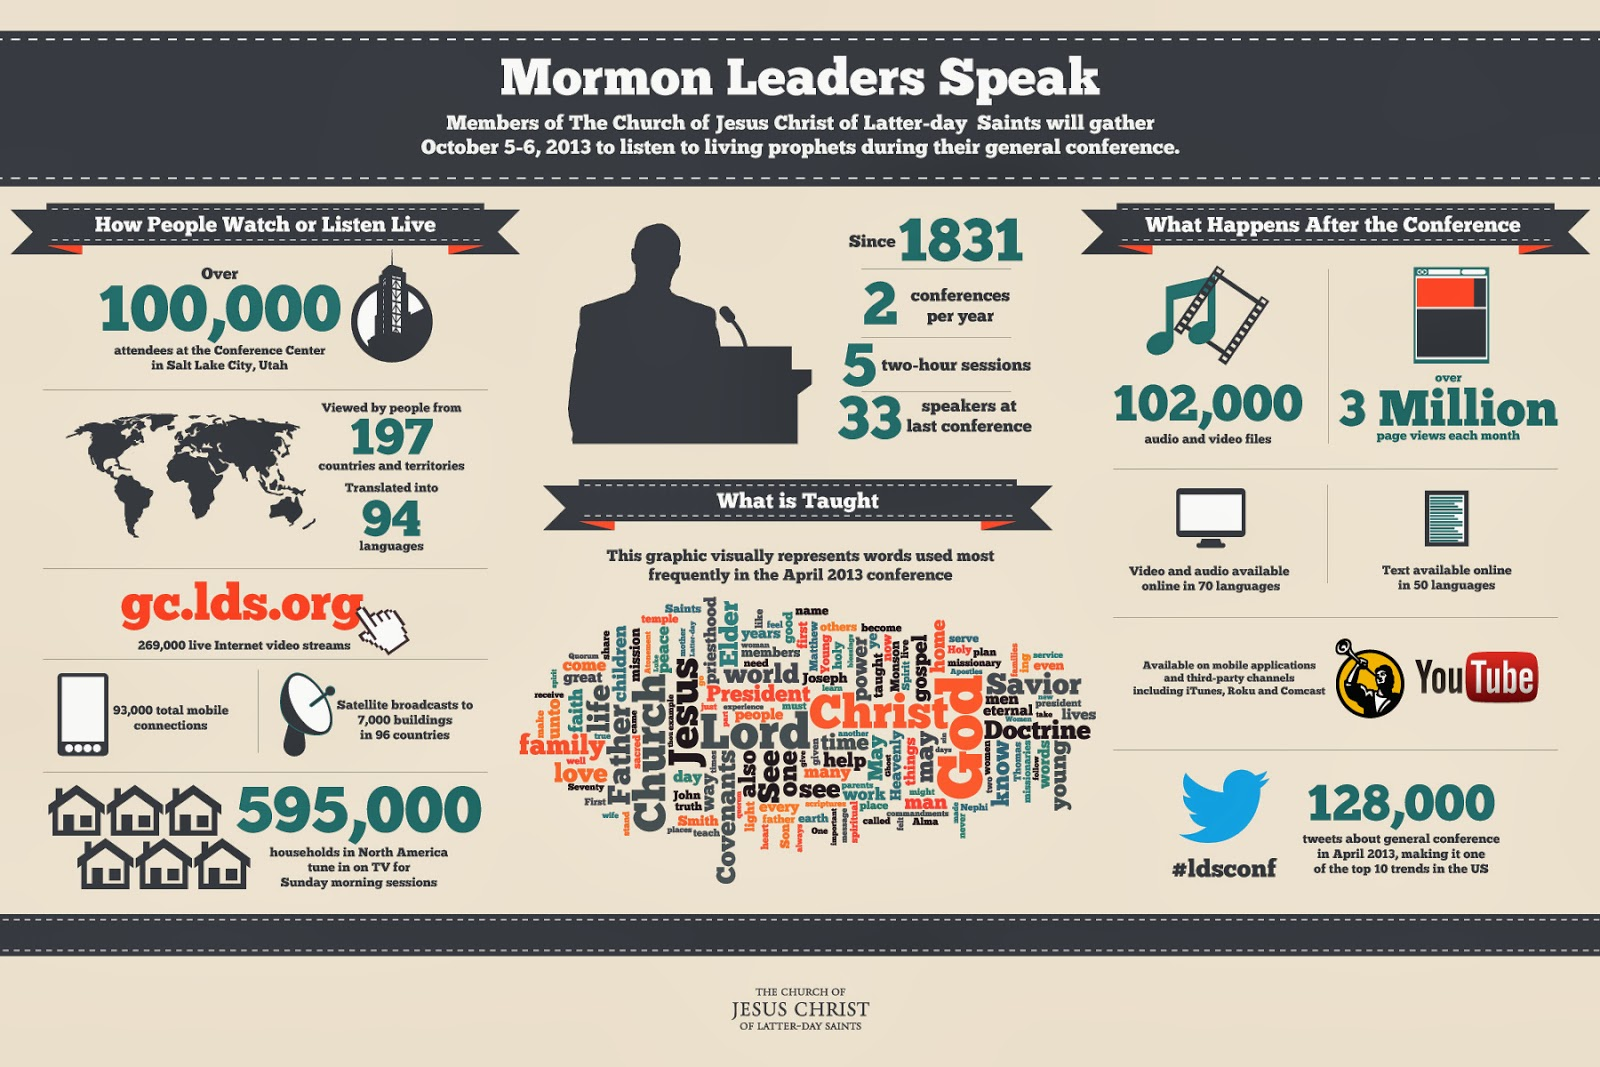 LDS-Mormon-general-conference-infographic-oct-2013.jpg